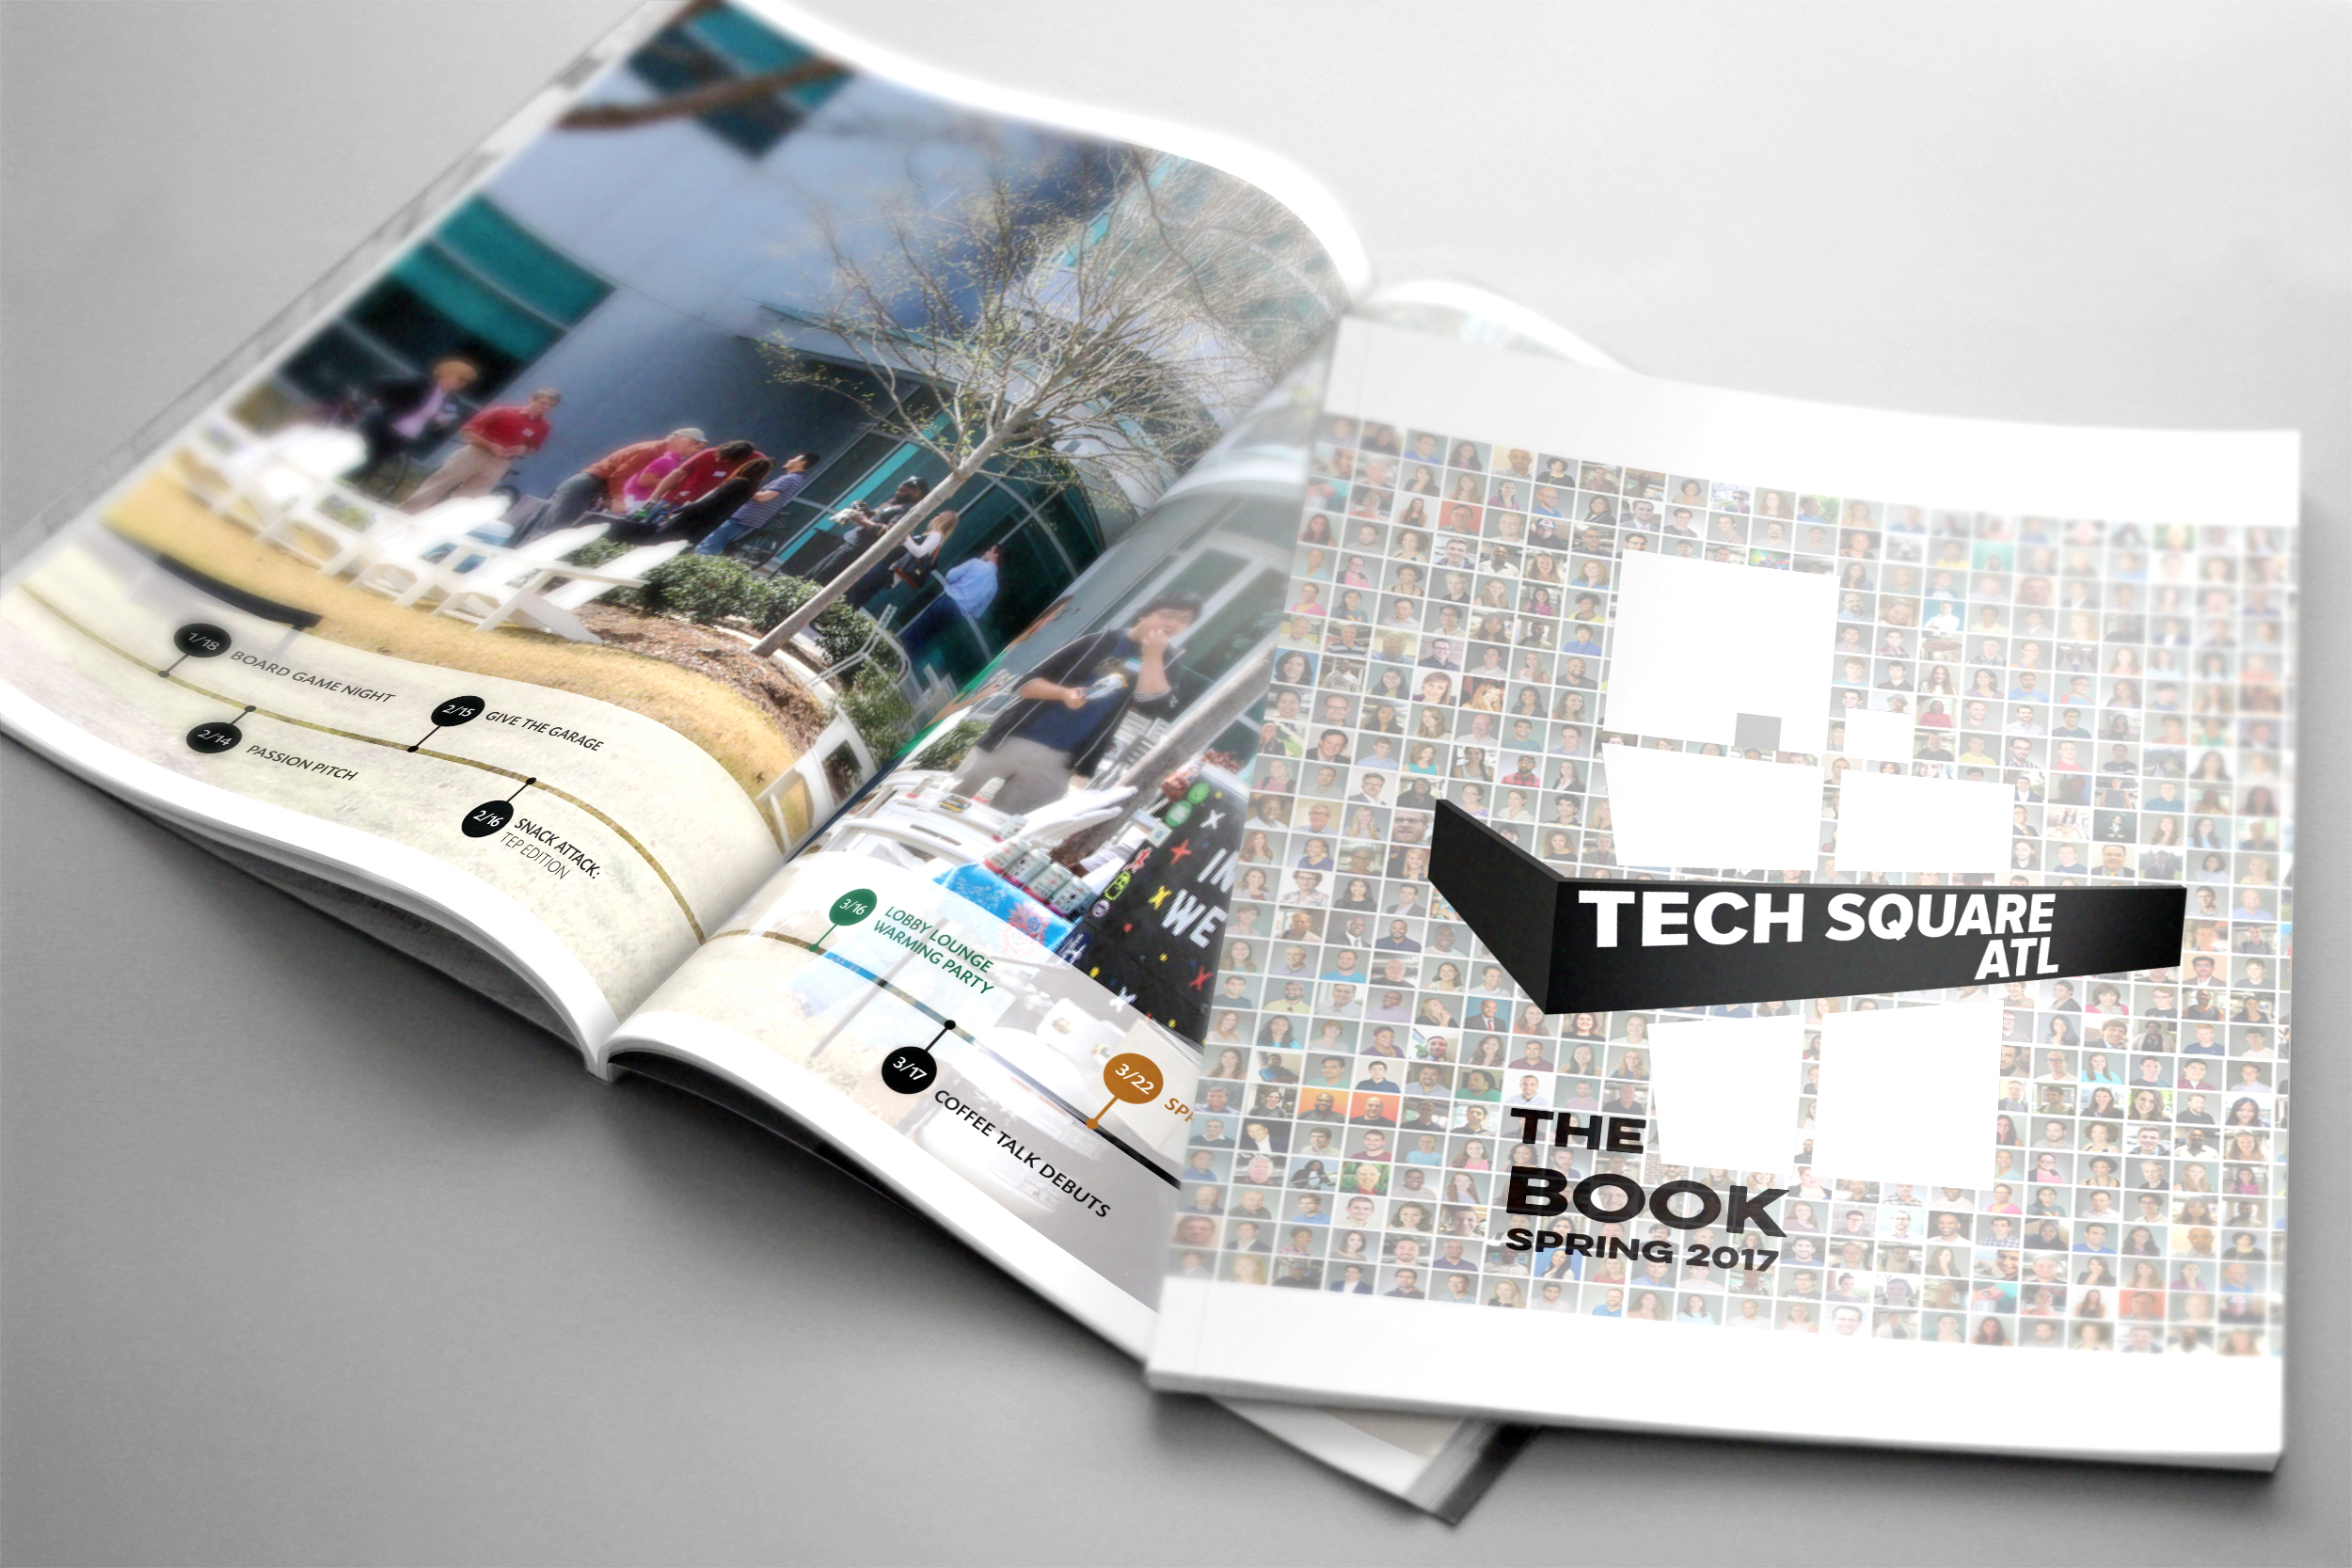 The Book is ready to give you a better understanding of the people and organizations who make Tech Square the heart of Atlanta's tech scene.  Produced three times a year, this comprehensive community resource for Tech Square features the people, ideas, and companies found at the heart of Atlanta's tech scene.